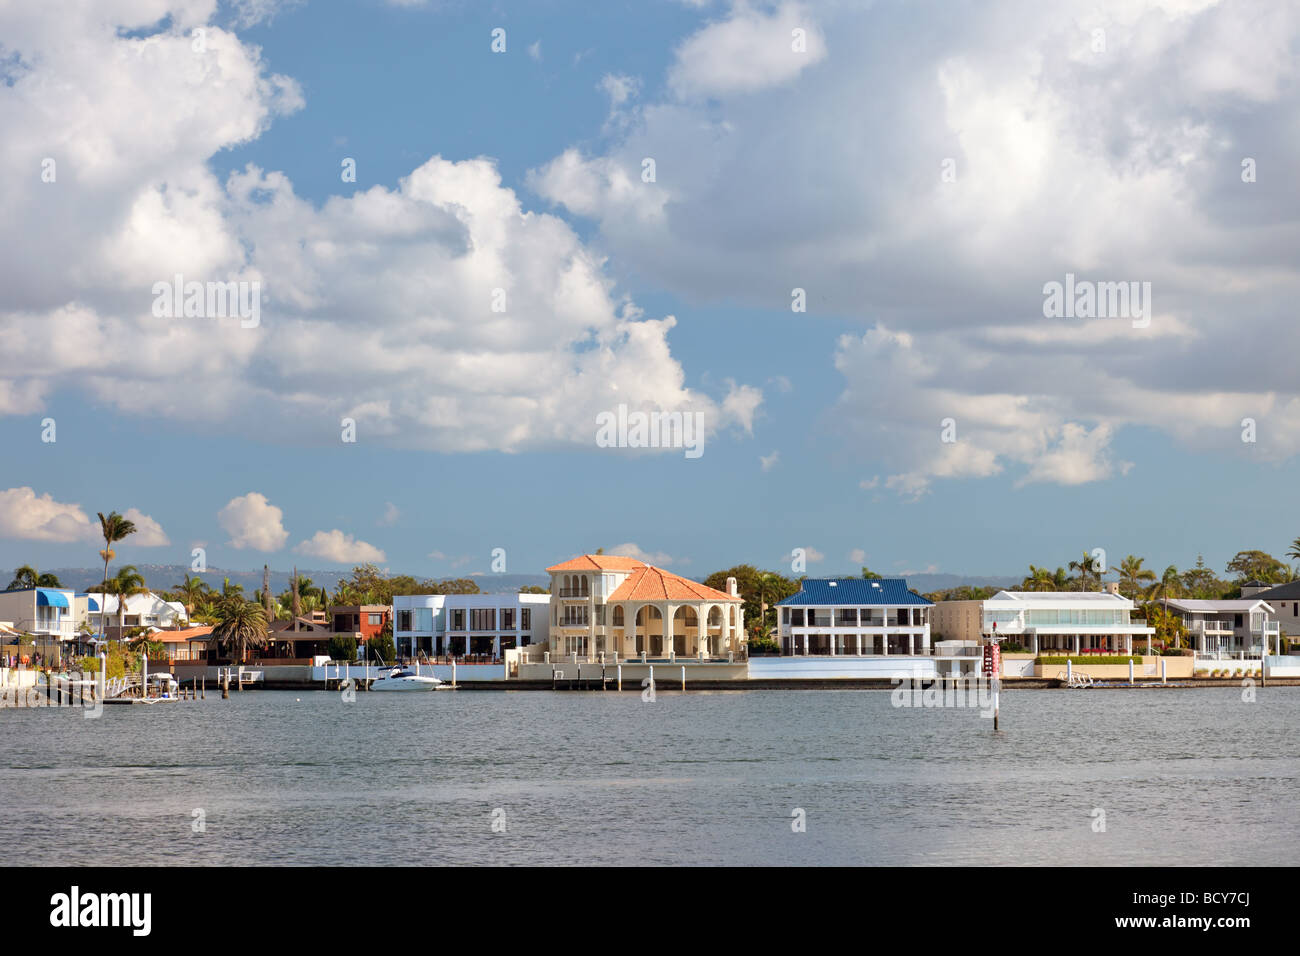 Waterfront homes fronting a river showing development in urban design Surfers Paradise Queensland Australia - Stock Image